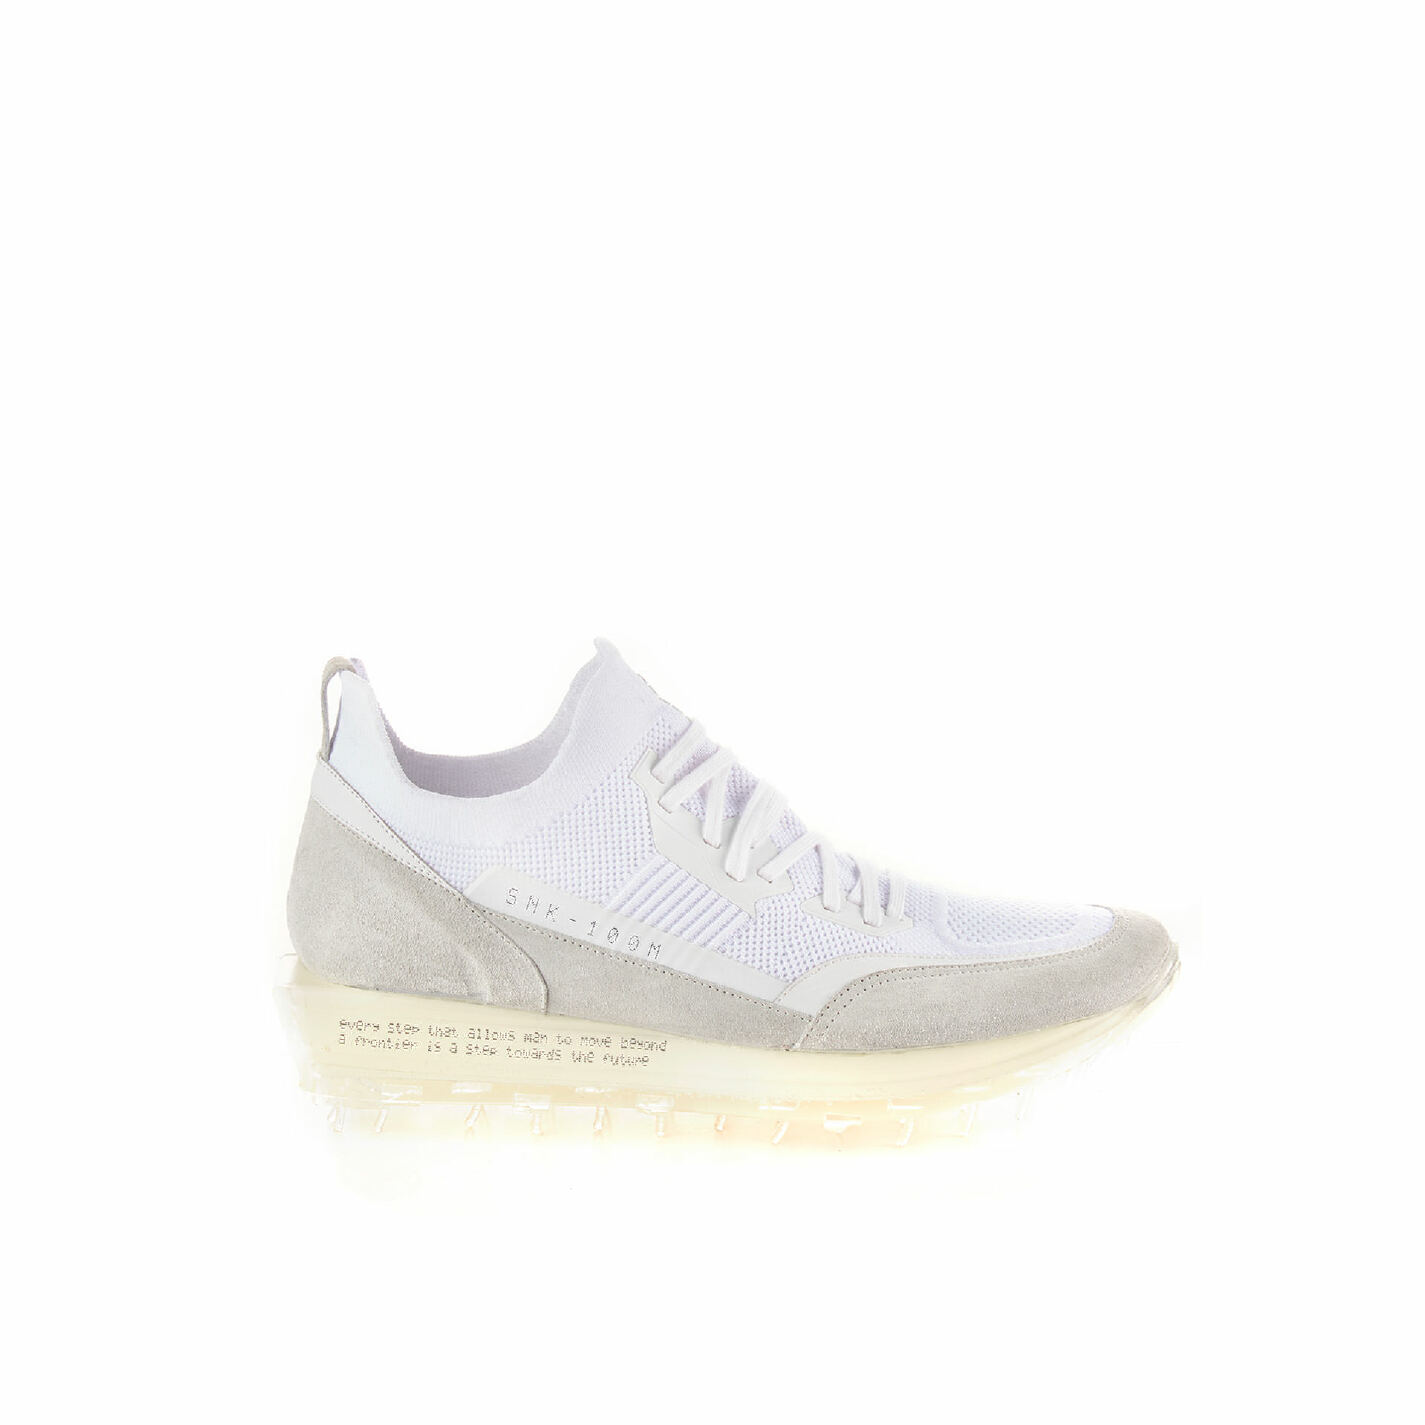 Men's SNK-100M trainers in white technical knit fabric with see-through sole